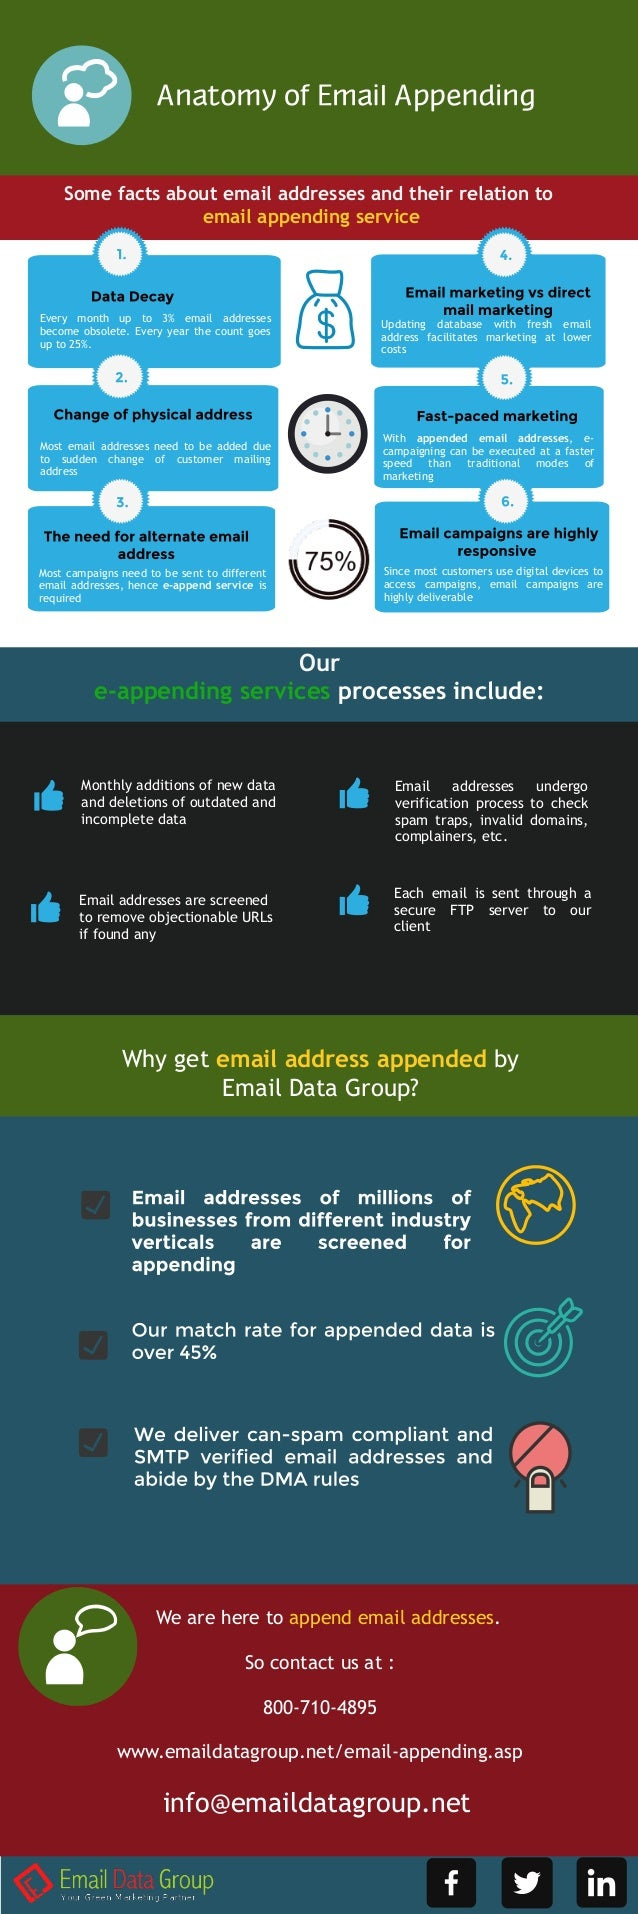 Facts About Email Appending. Roundpoint Mortgage Servicing Corp. Where To Post Ads For Free Ireland Golf Trips. Chicago Continuing Education. Procurement Manager Responsibilities. Used Car Extended Warranty Cost. Global Merchant Processing Lawyer Columbus Oh. Cheap Website Builder And Hosting. Avocados For Weight Loss Best Managed Hosting